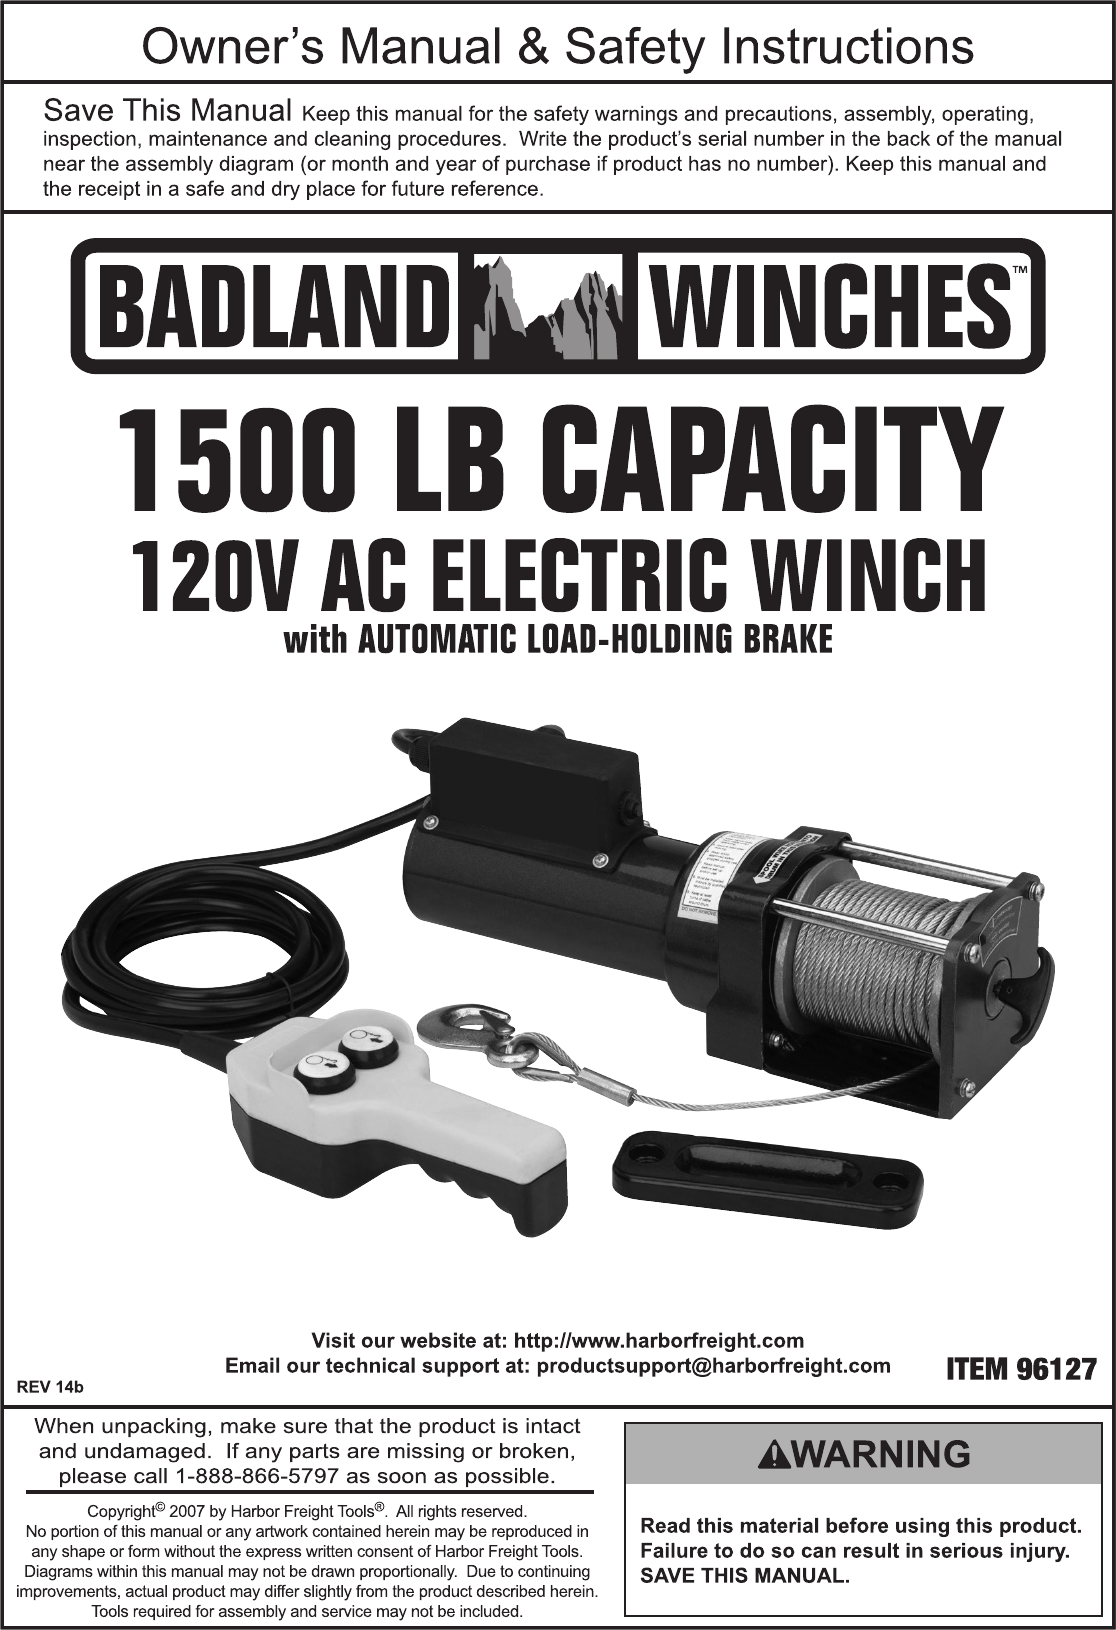 Manual For The 96127 1500 Lb Capacity 120 Volt Ac Electric Winch Badland Winches Website